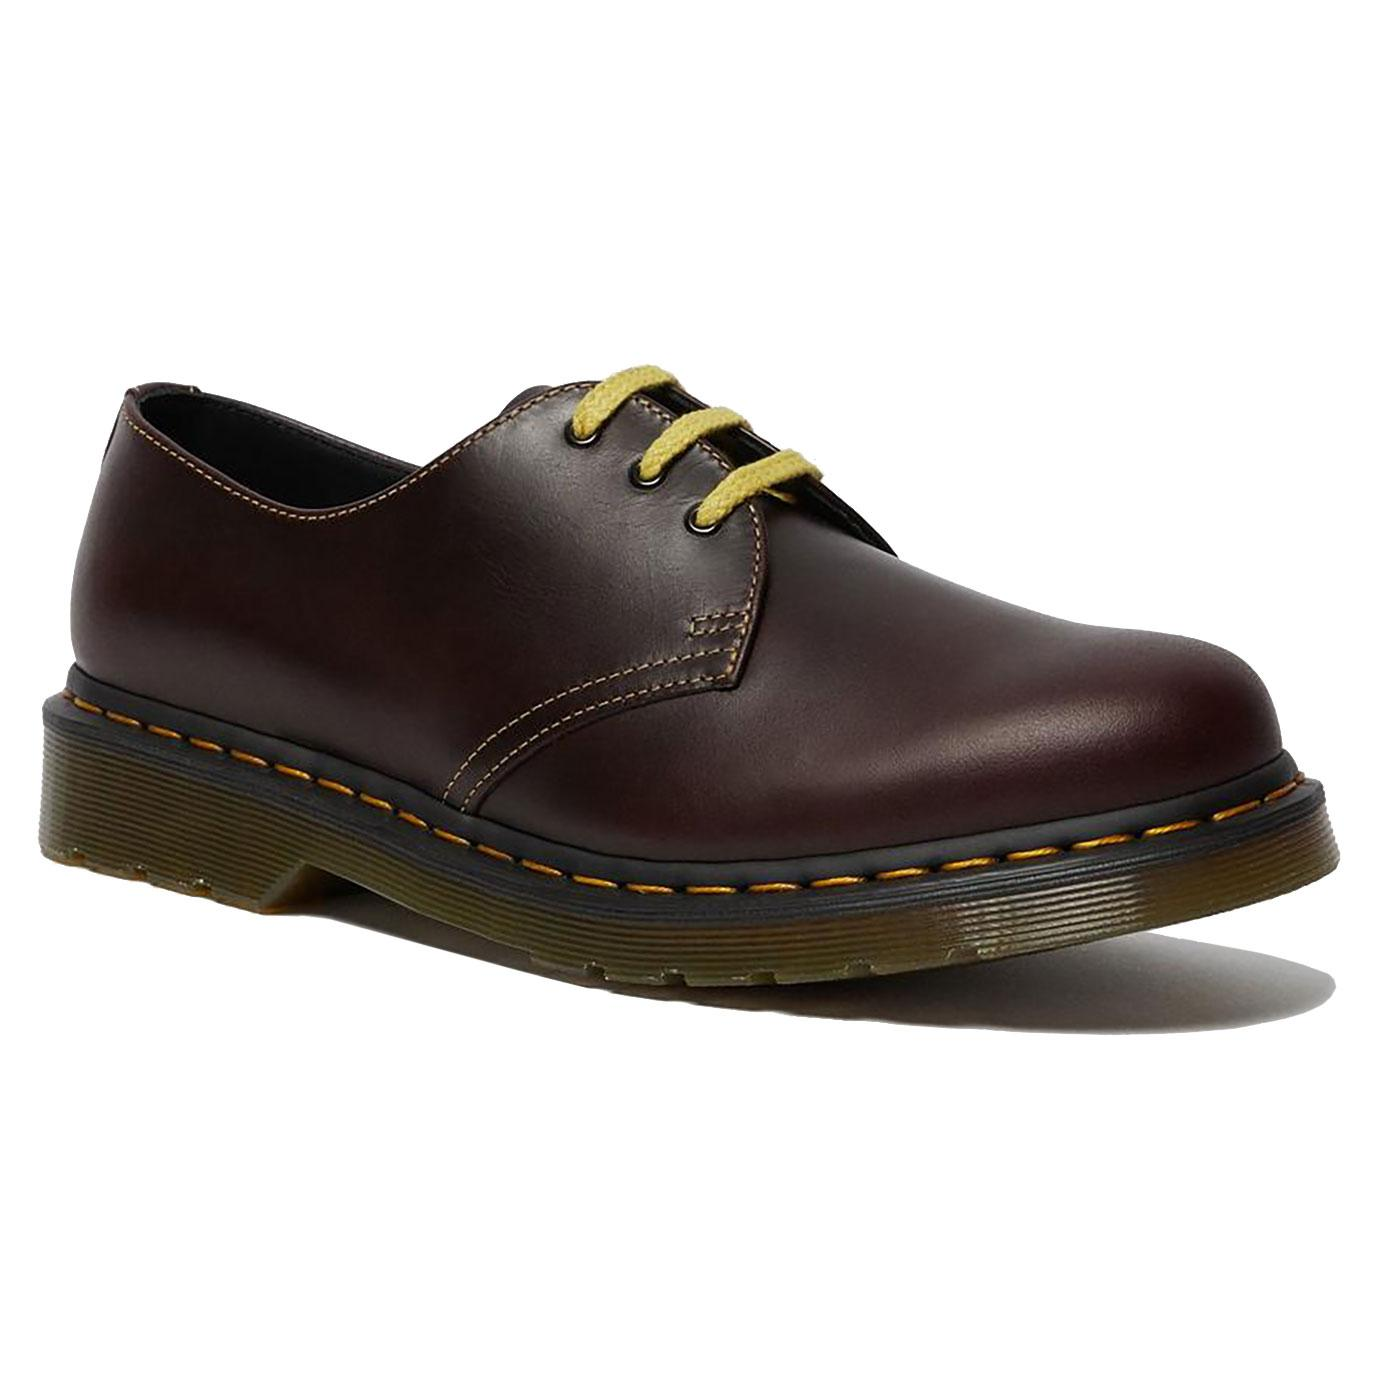 1461 DR MARTENS Mens Atlas Leather Oxford Shoes O